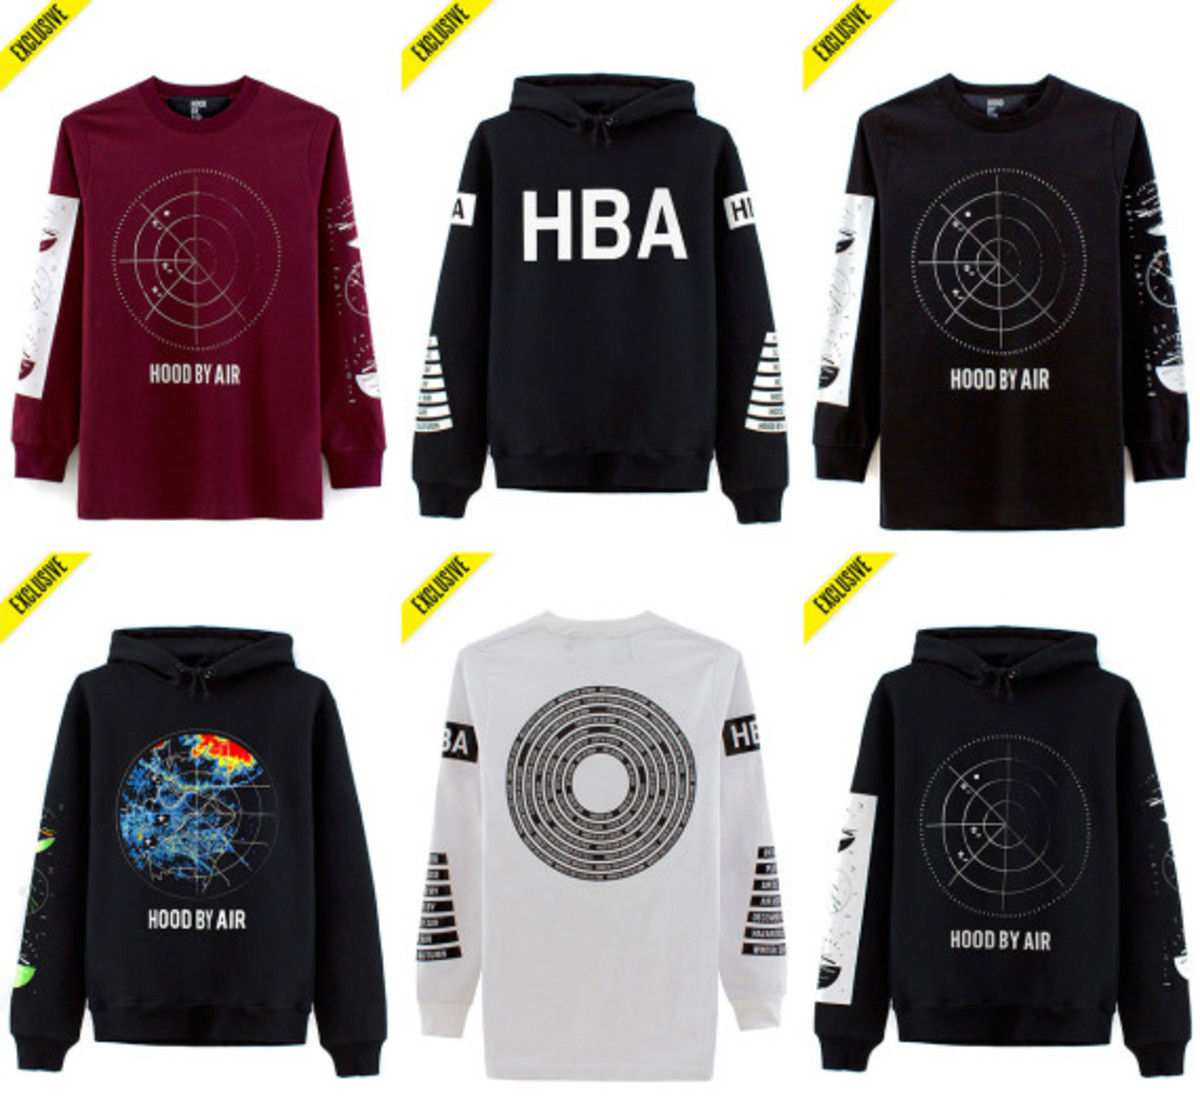 HOOD BY AIR - VFILES Exclusive Collection - 0